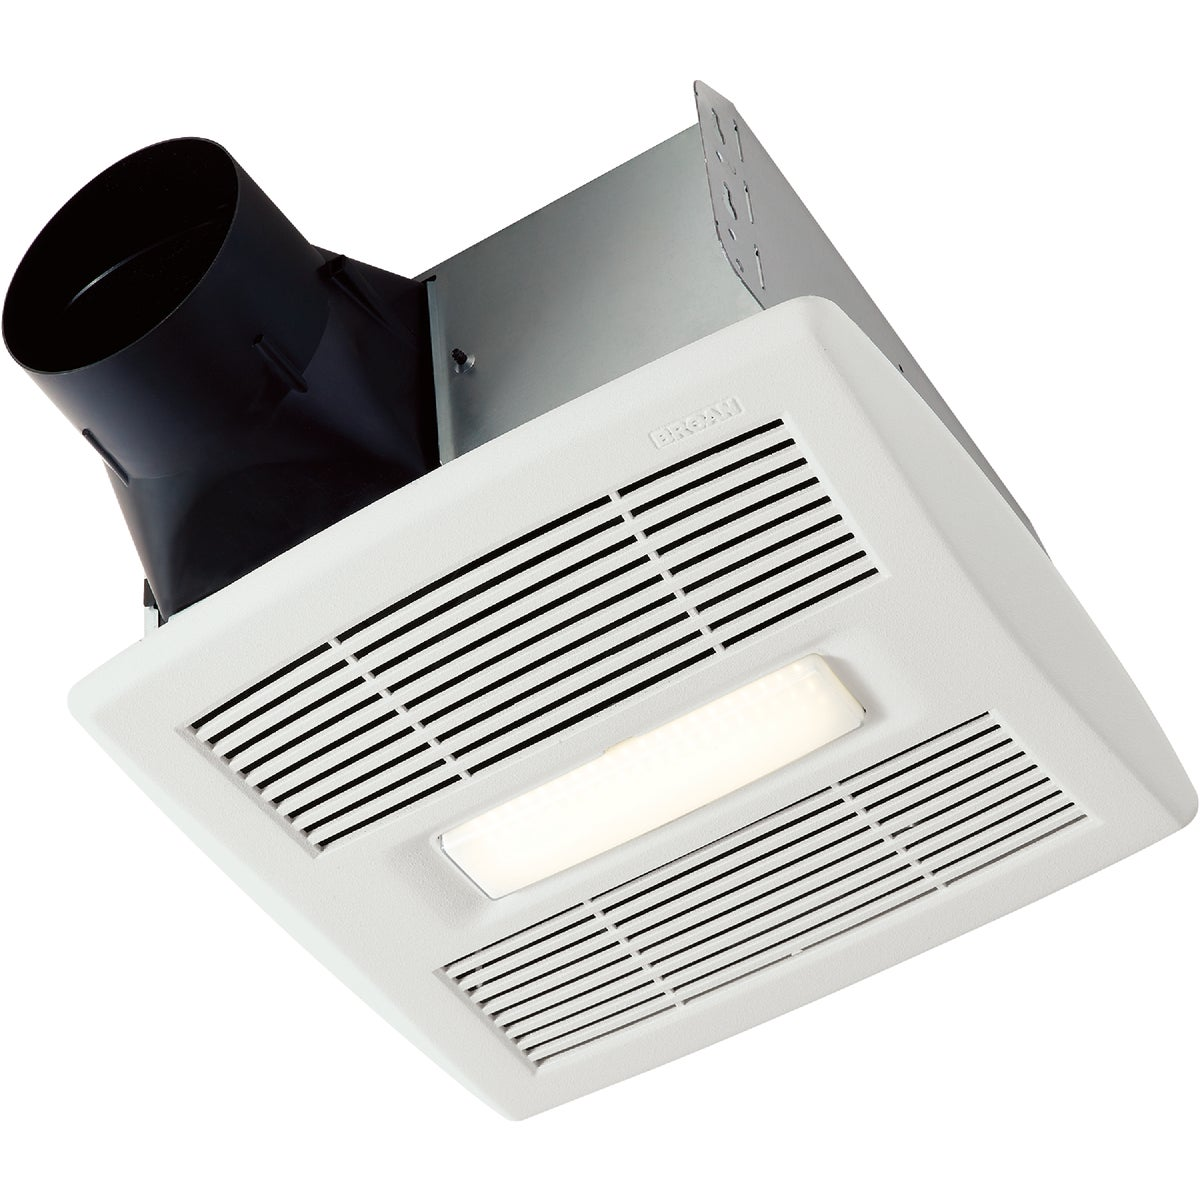 Broan 80 CFM ENERGY STAR Fluorescent Light/Night Light Bath Exhaust Fan, AE80L